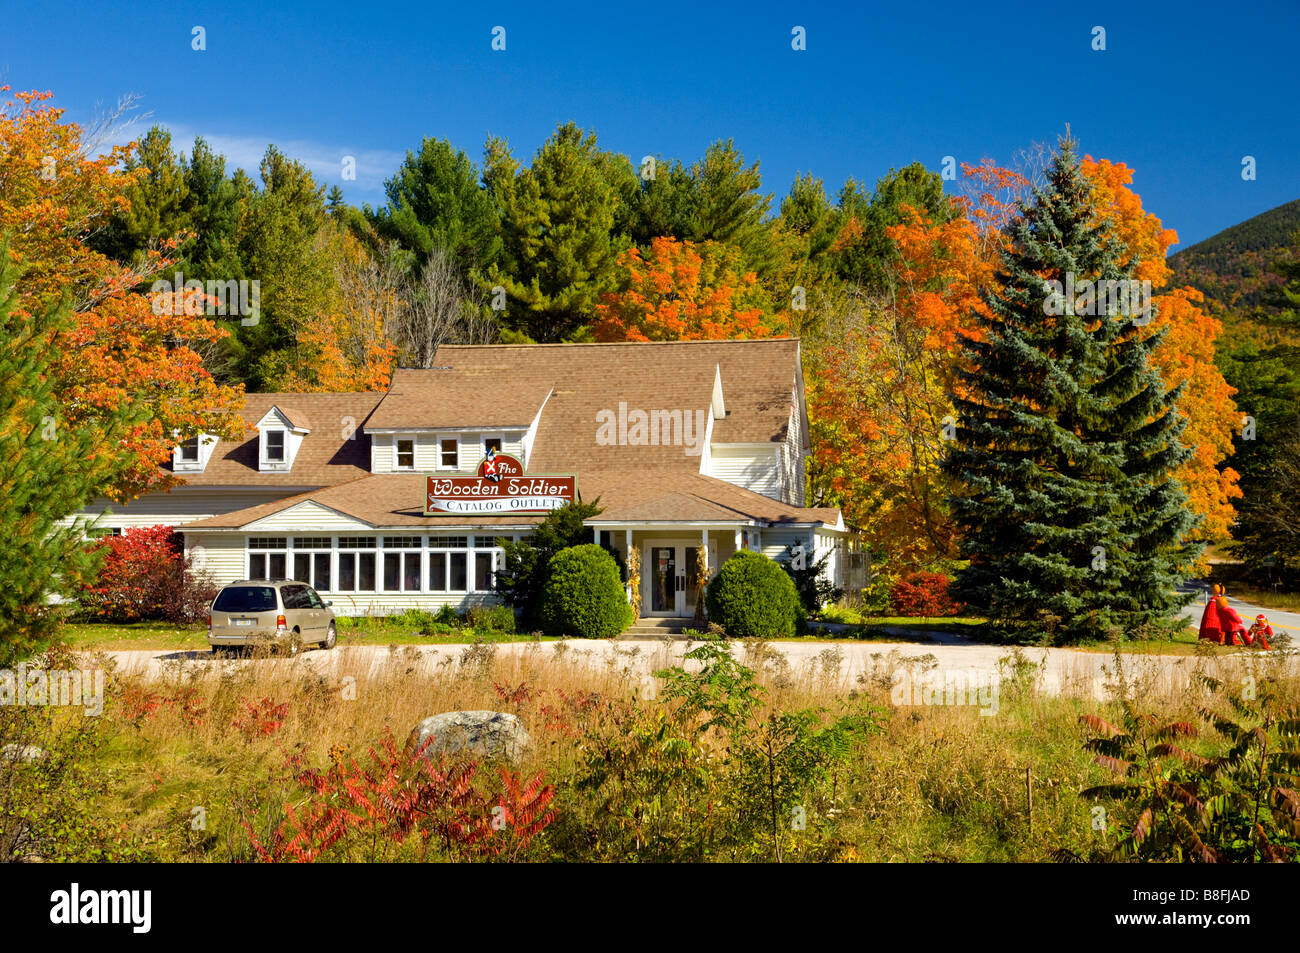 The Wooden Soldier Store With Fall Foliage Color In The Trees In